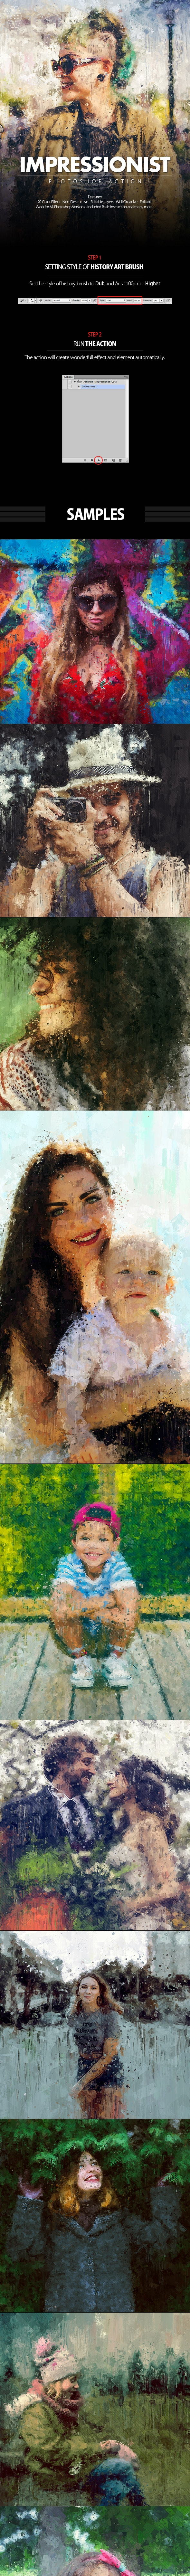 Impressionist Photoshop Action - Photo Effects Actions